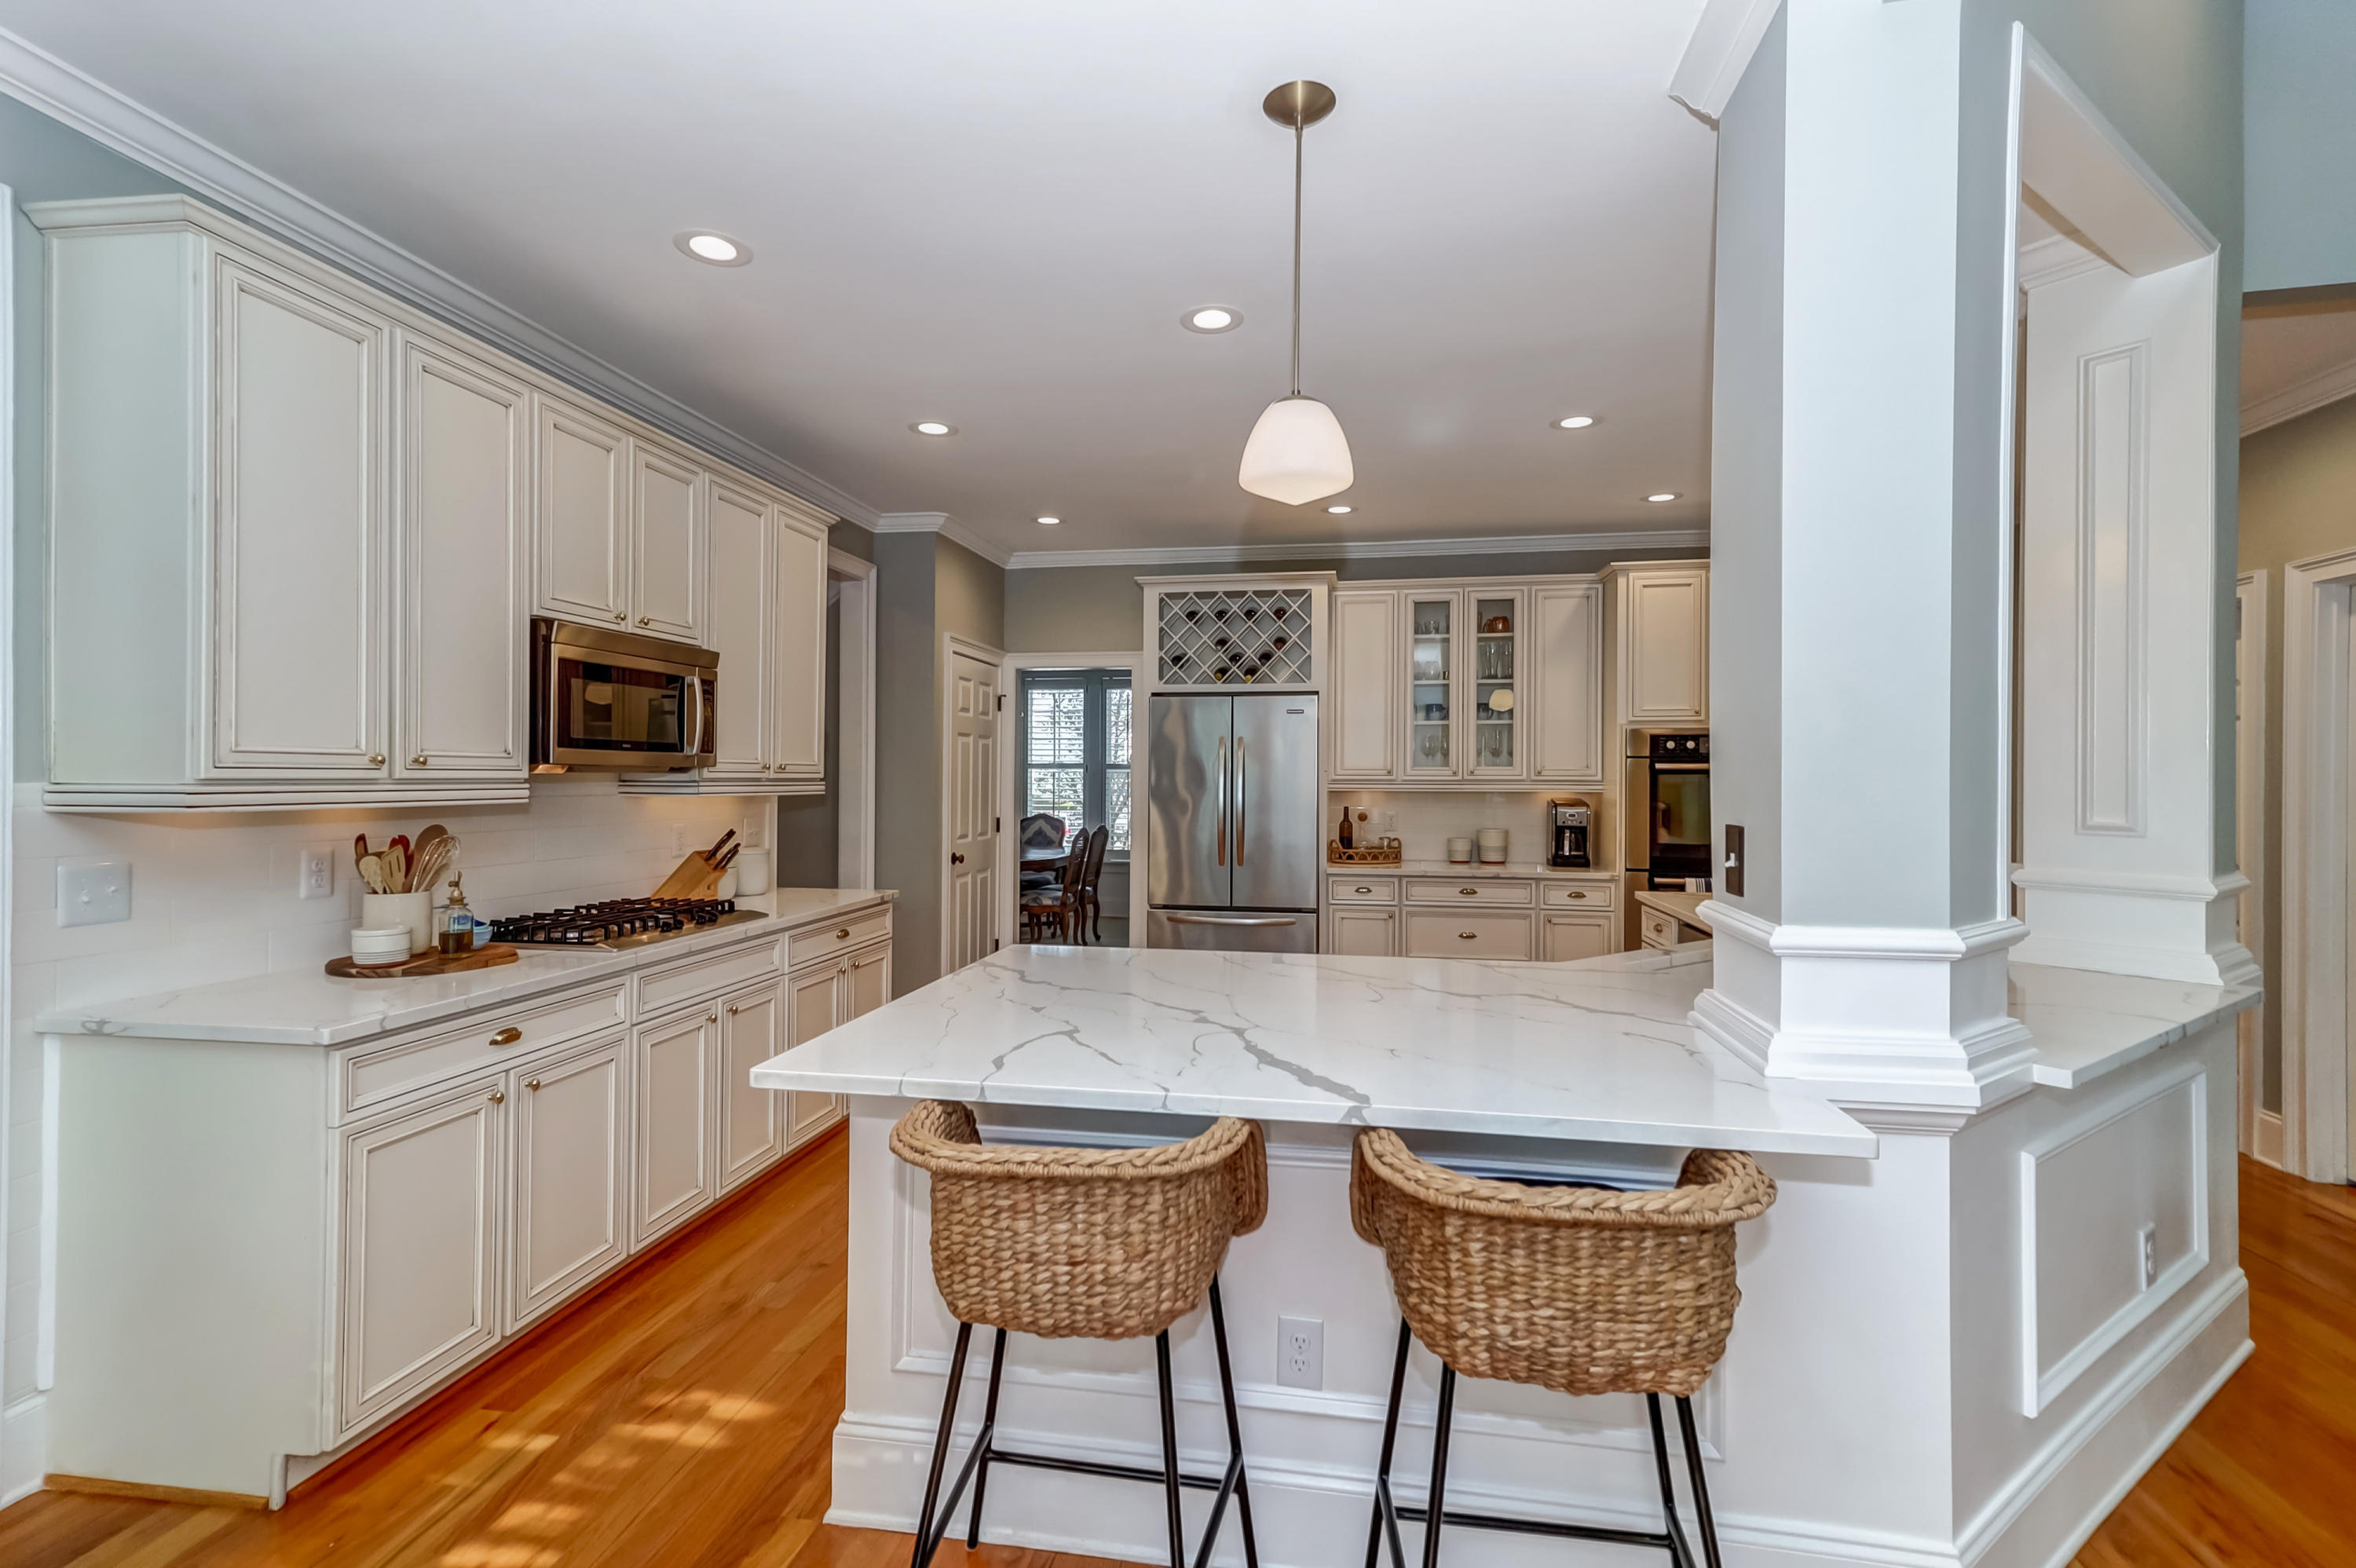 Woodward Pointe Homes For Sale - 657 White Chapel, Charleston, SC - 34